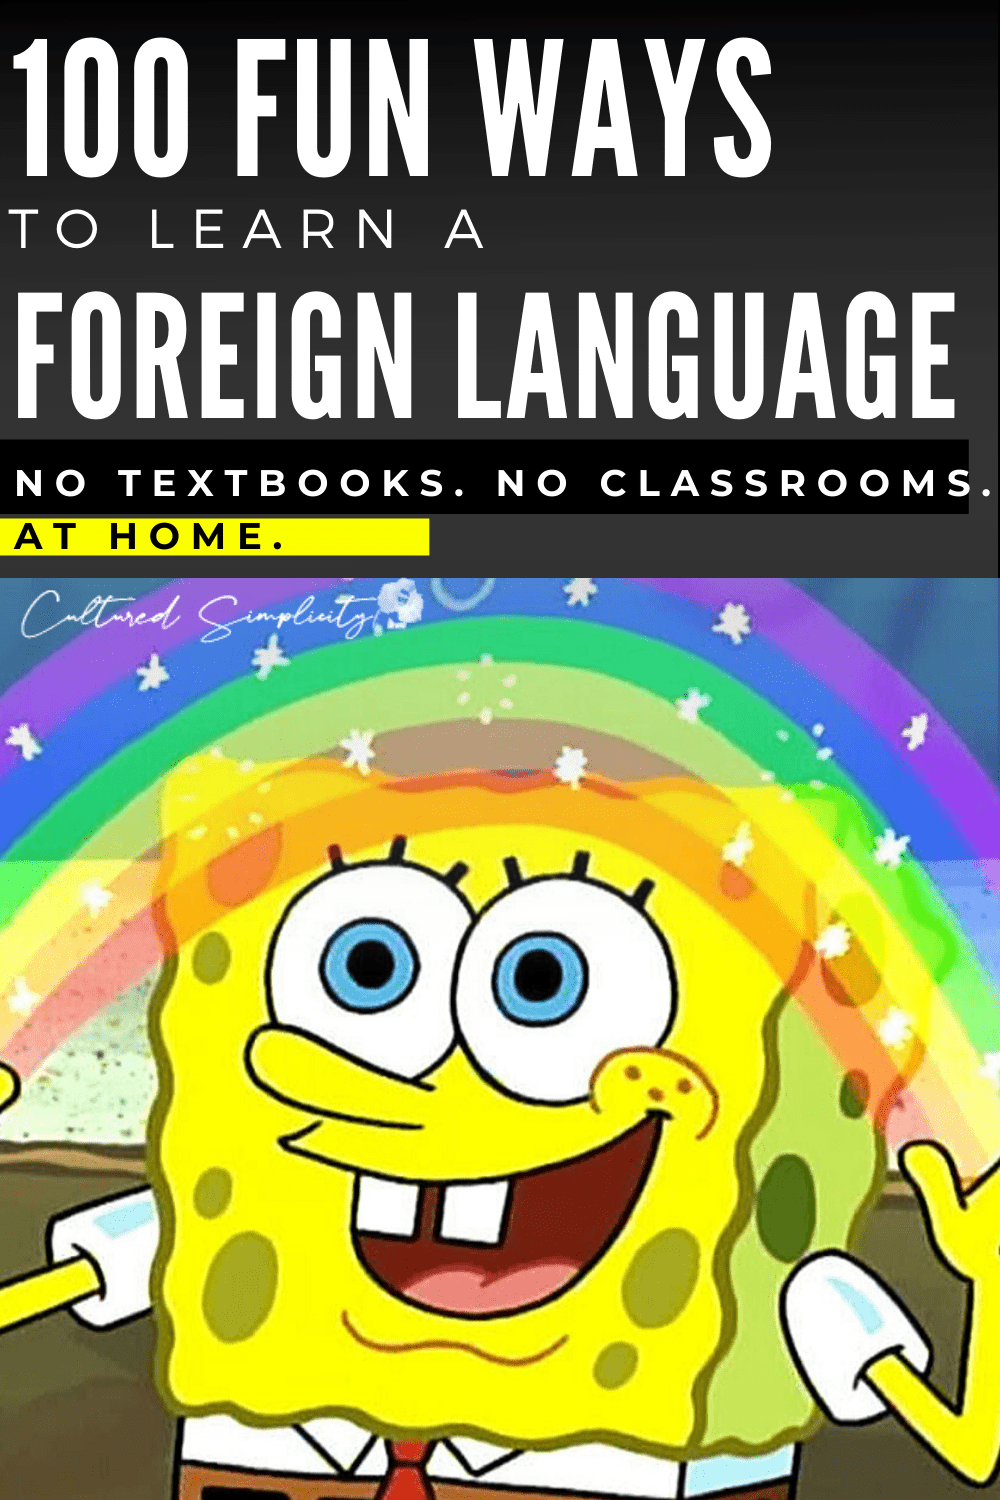 100 FUN ways to learn another language AT HOME